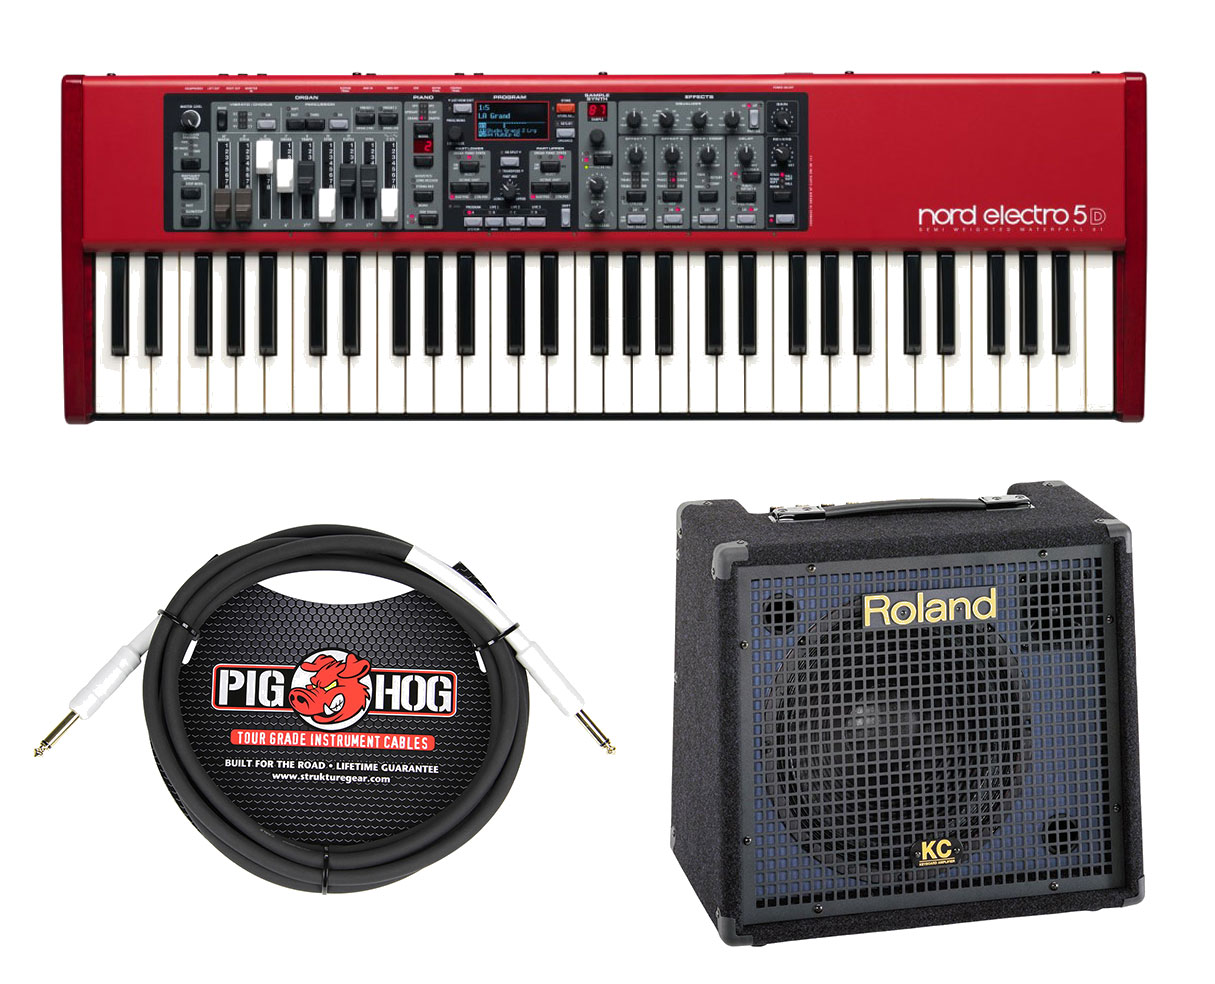 Nord Electro 5D 61 Stage Piano + Roland KC-150 + Cable by